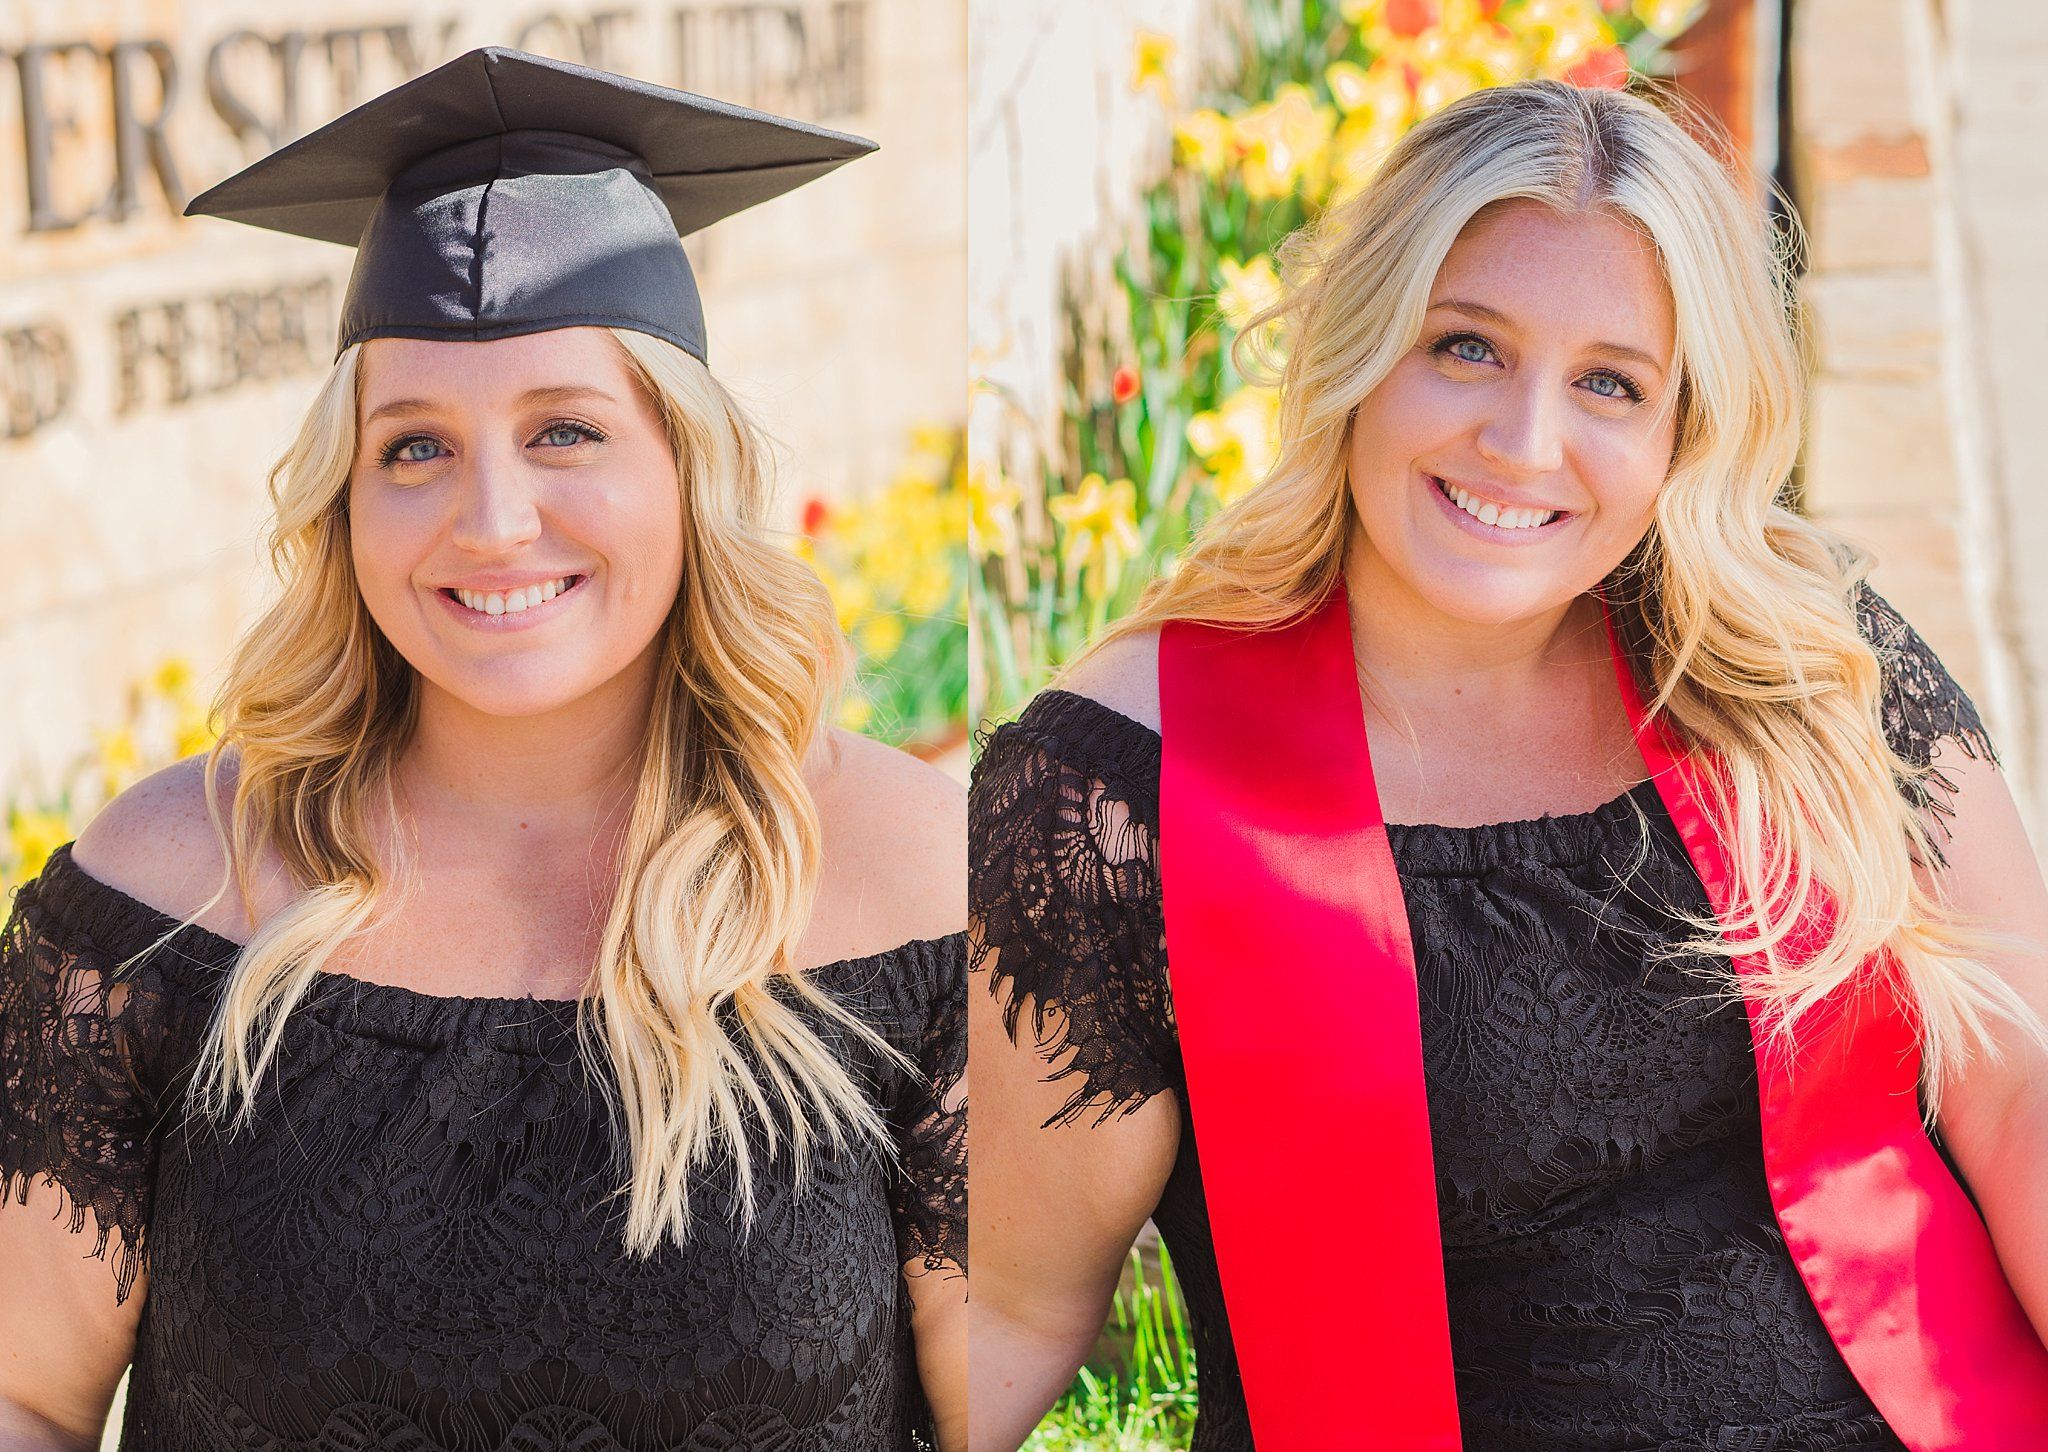 Salt Lake City,graduation photos,hilary gardiner photography,senior session,university of utah,